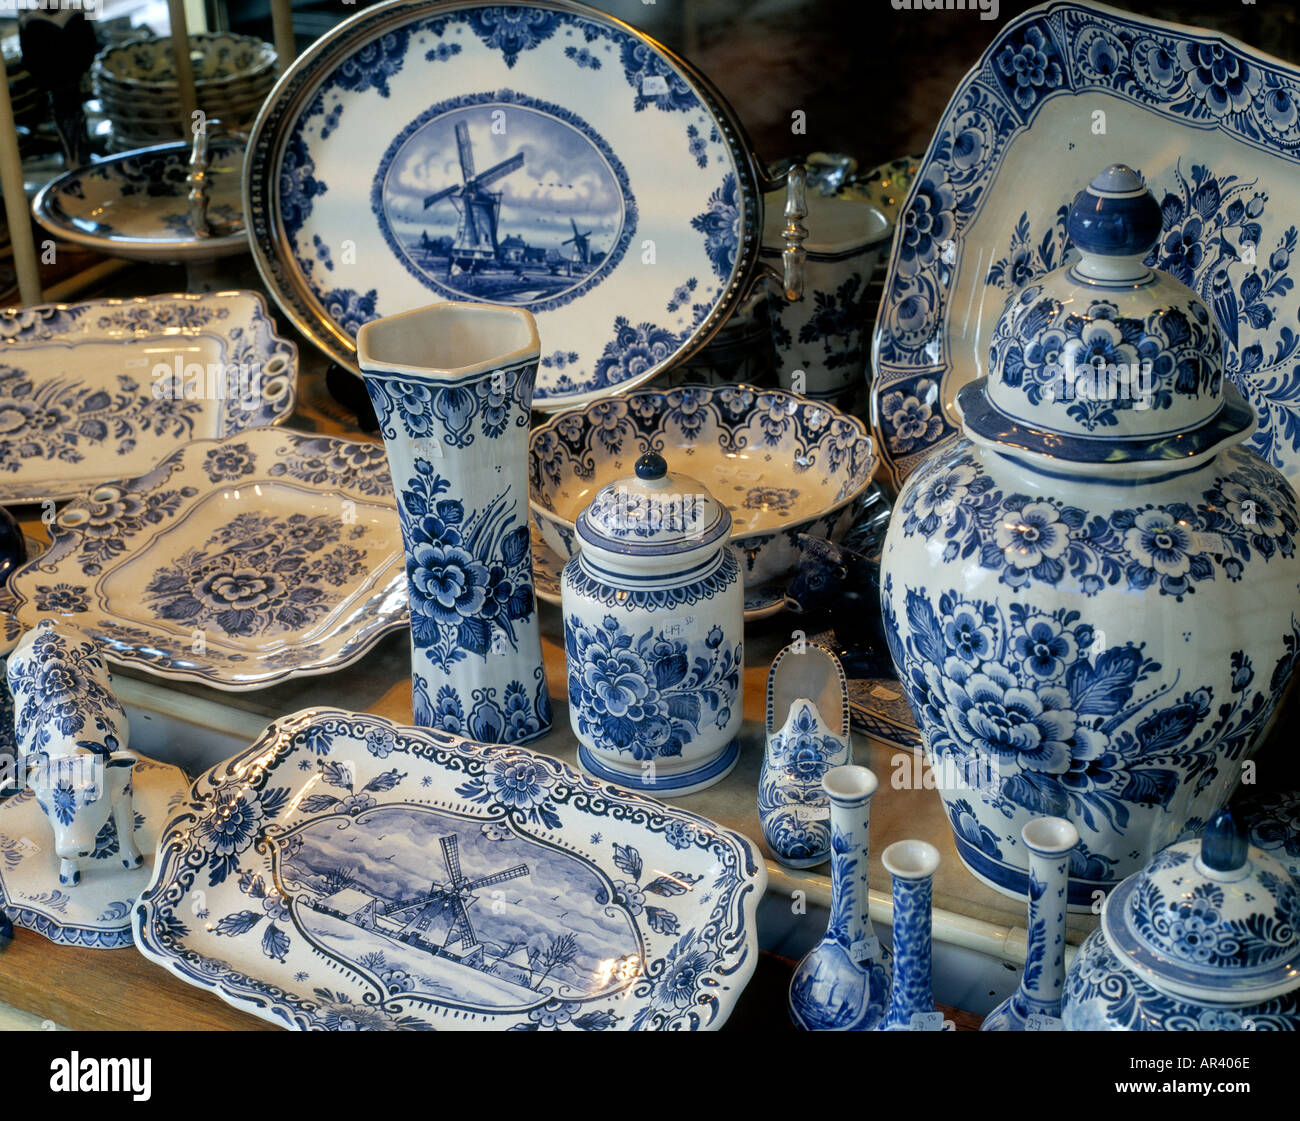 Delft Blue Pottery Delft Zuid Holland Holland - Stock Image